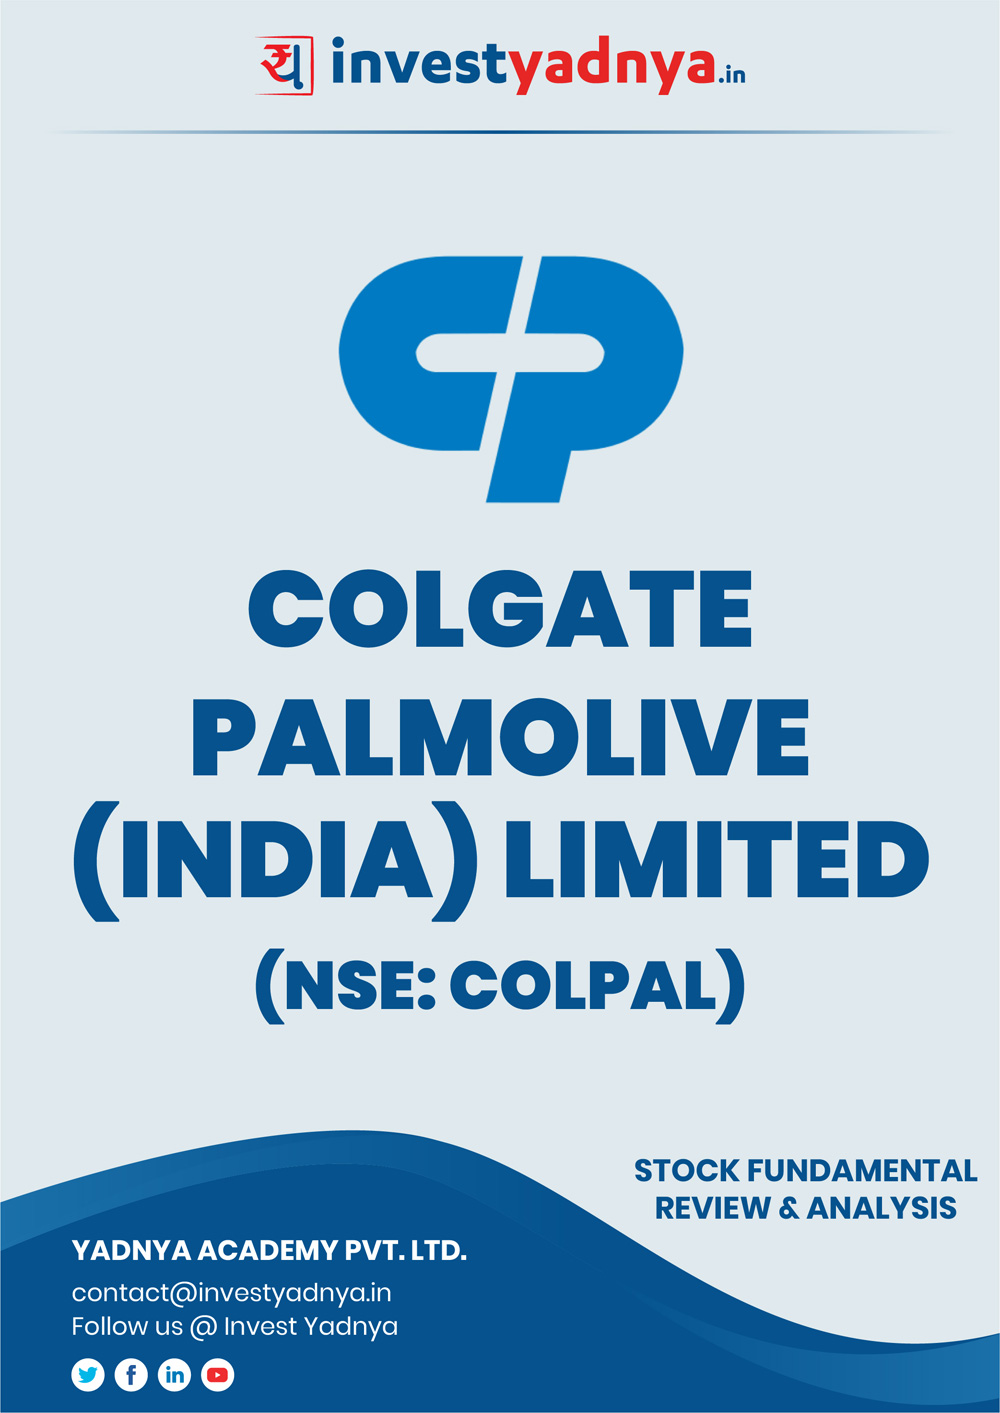 This e-book contains in-depth fundamental analysis of Colgate Palmolive considering both Financial and Equity Research Parameters. It reviews the company, industry competitors, shareholding pattern, financials, and annual performance. ✔ Detailed Research ✔ Quality Reports